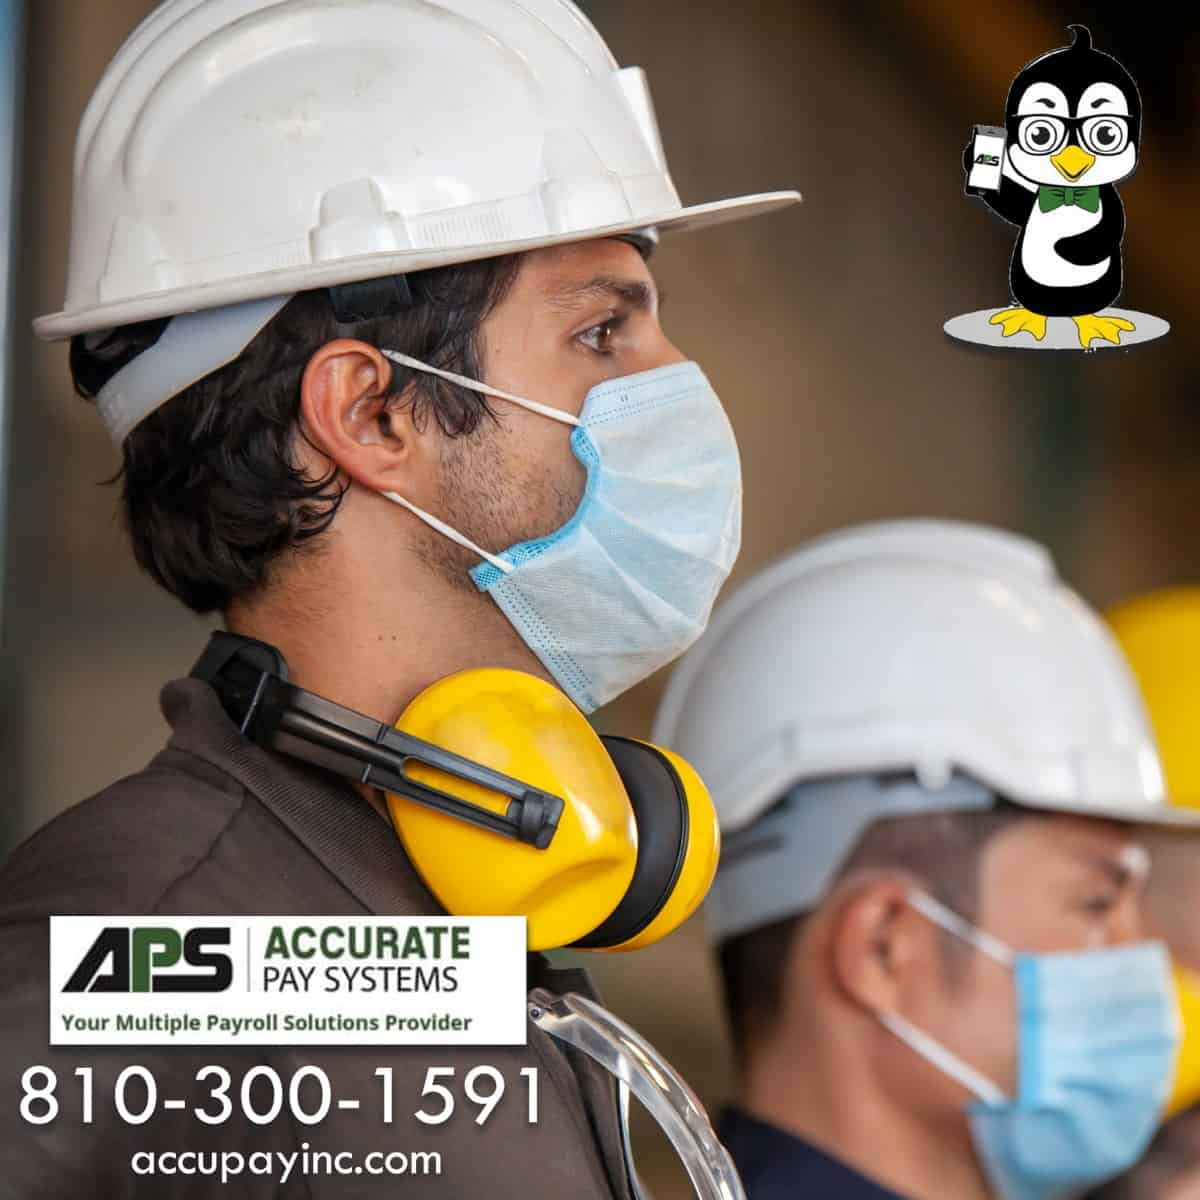 Employees in masks from Accurate Pay Systems